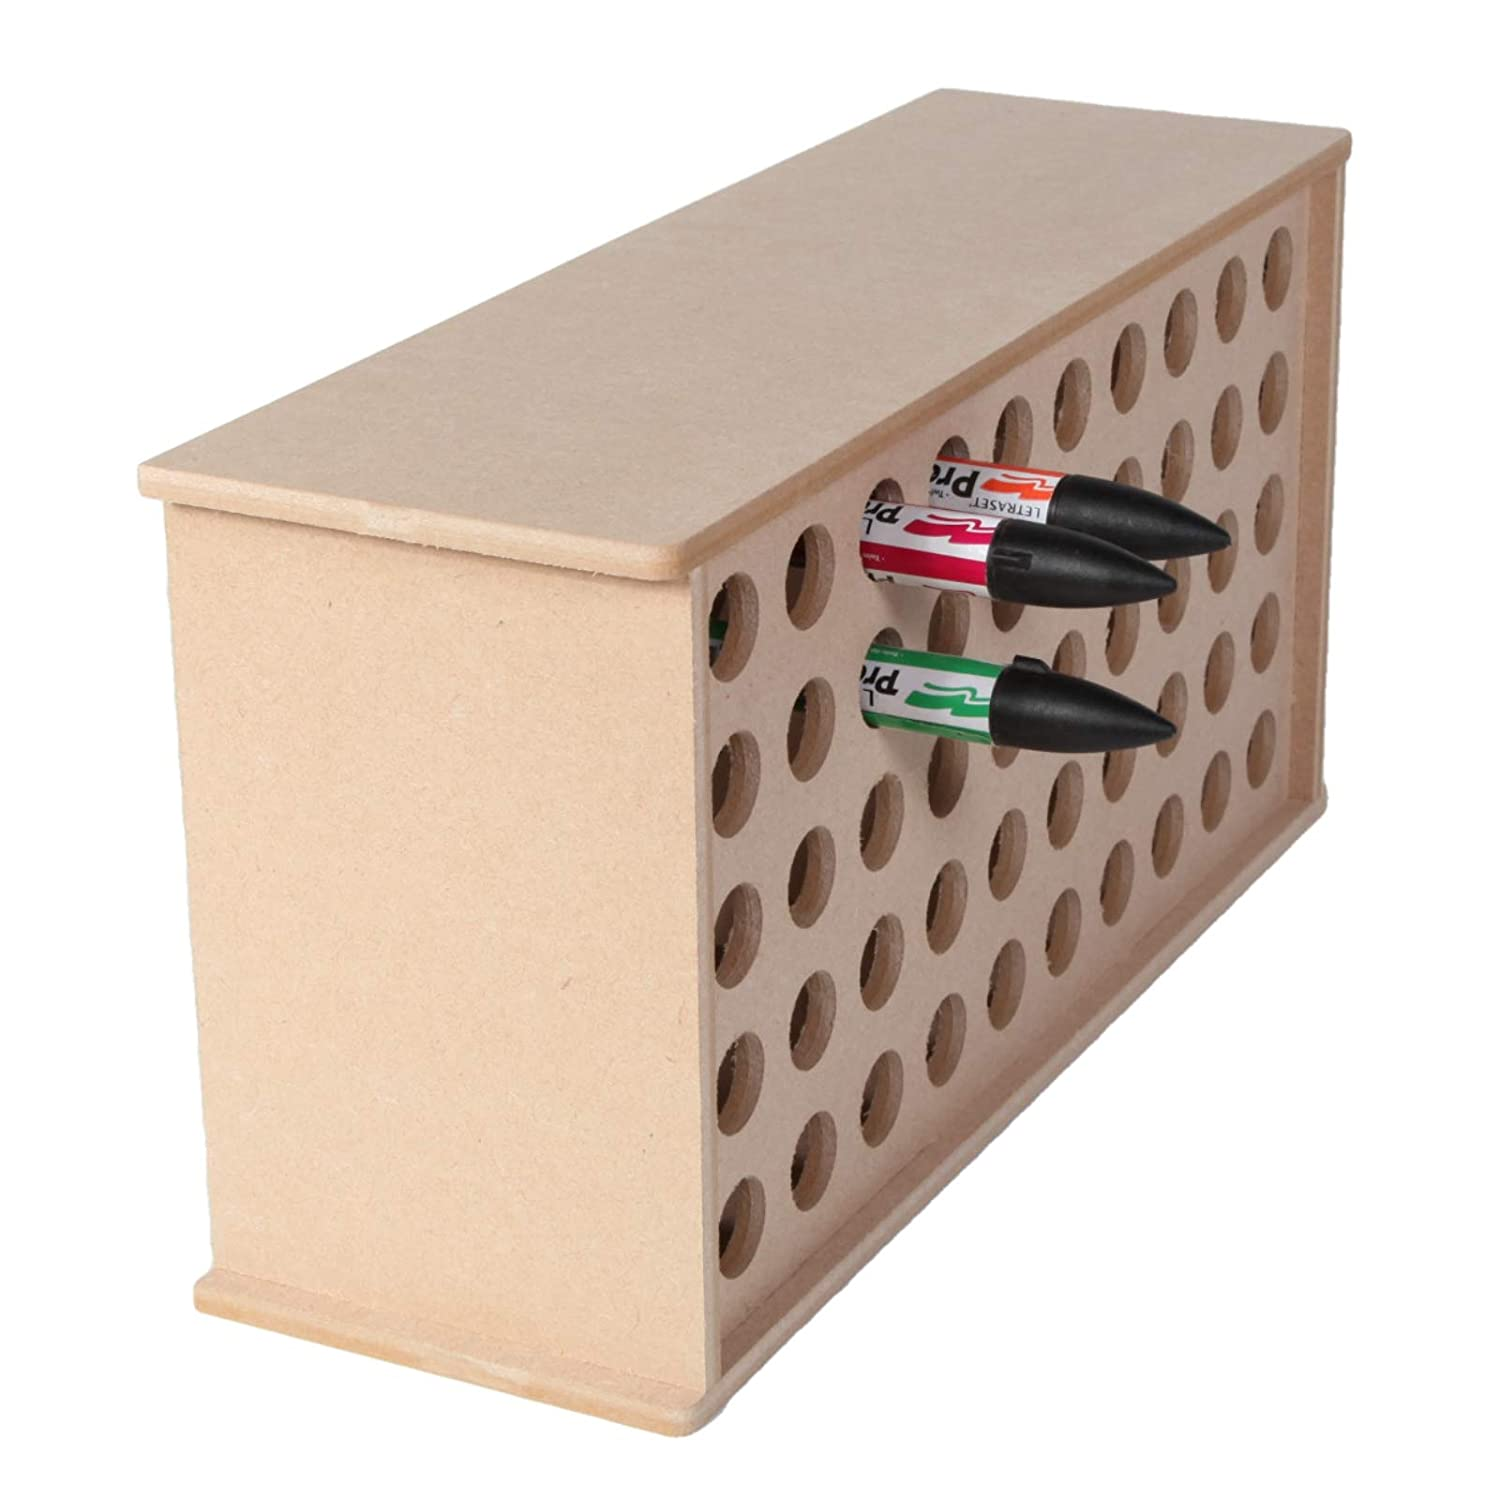 Pen Storage Holder for Spectrum Aqua Noir /& Promarkers etc up to 20mm wide